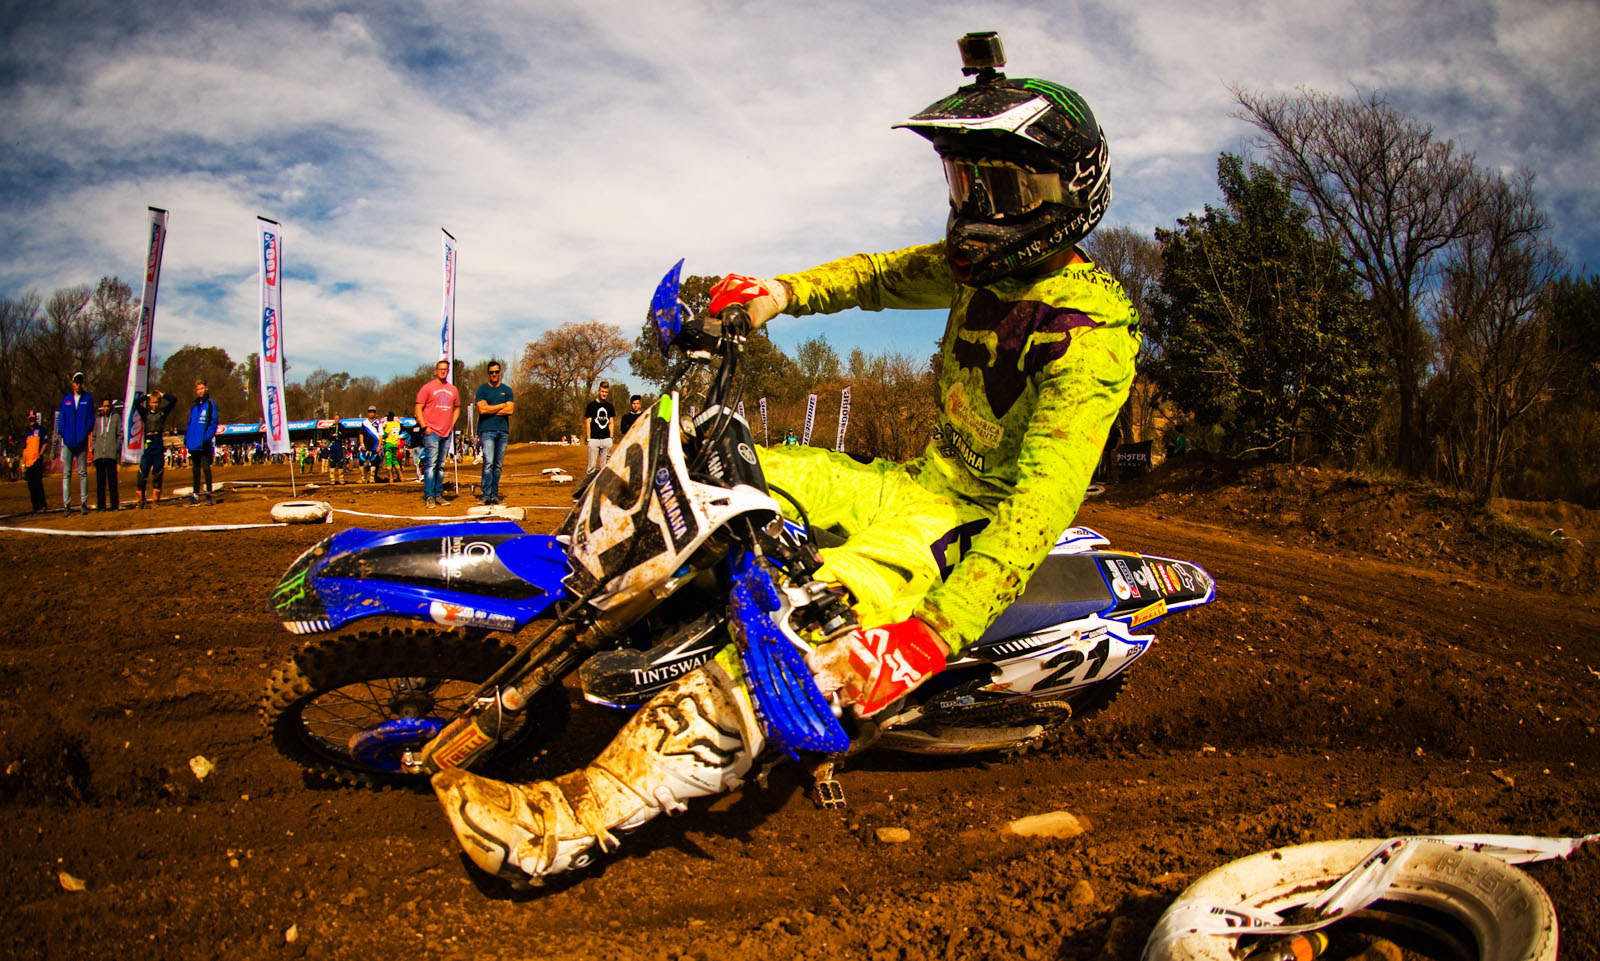 David Goosen racing his way to victory in the MX2 class at round 4 of the Motocross Nationals